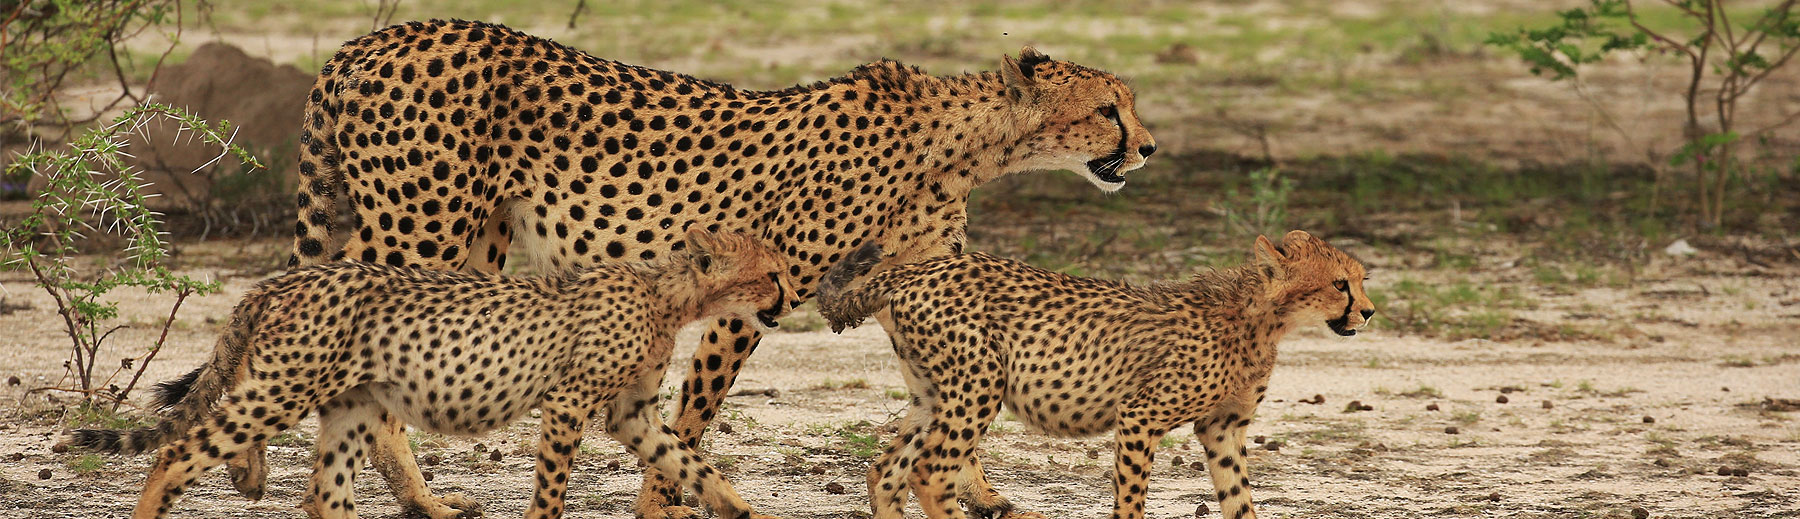 A female cheetah and two cubs walking by a thorny acacia.